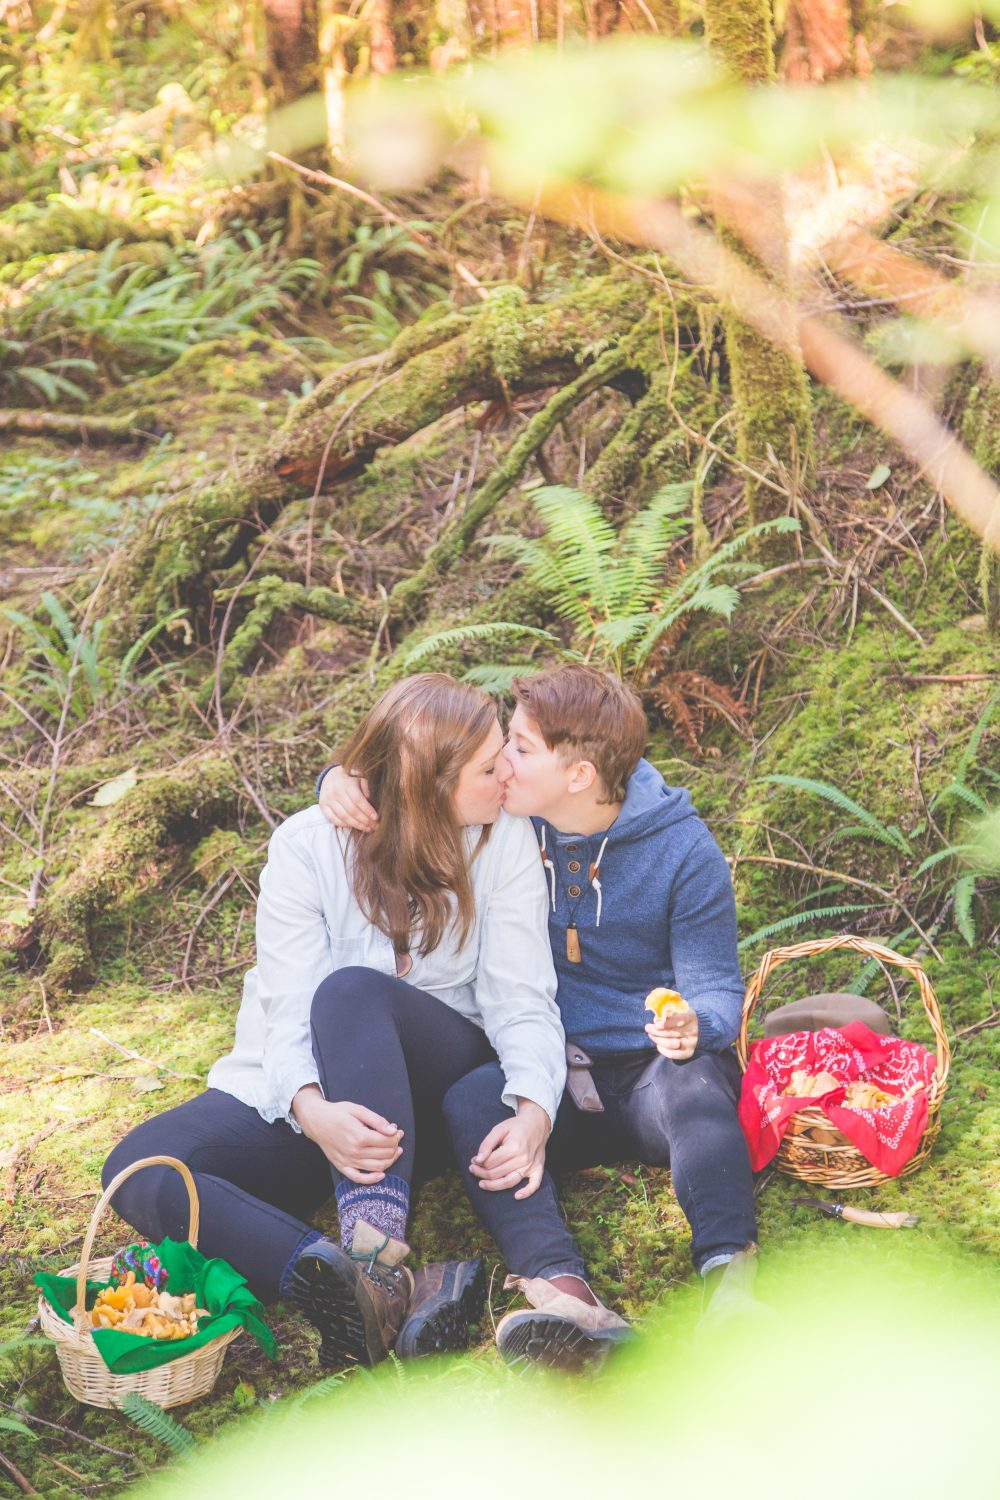 Jess & Mercedes' Forest Mushroom Picking Engagement Session